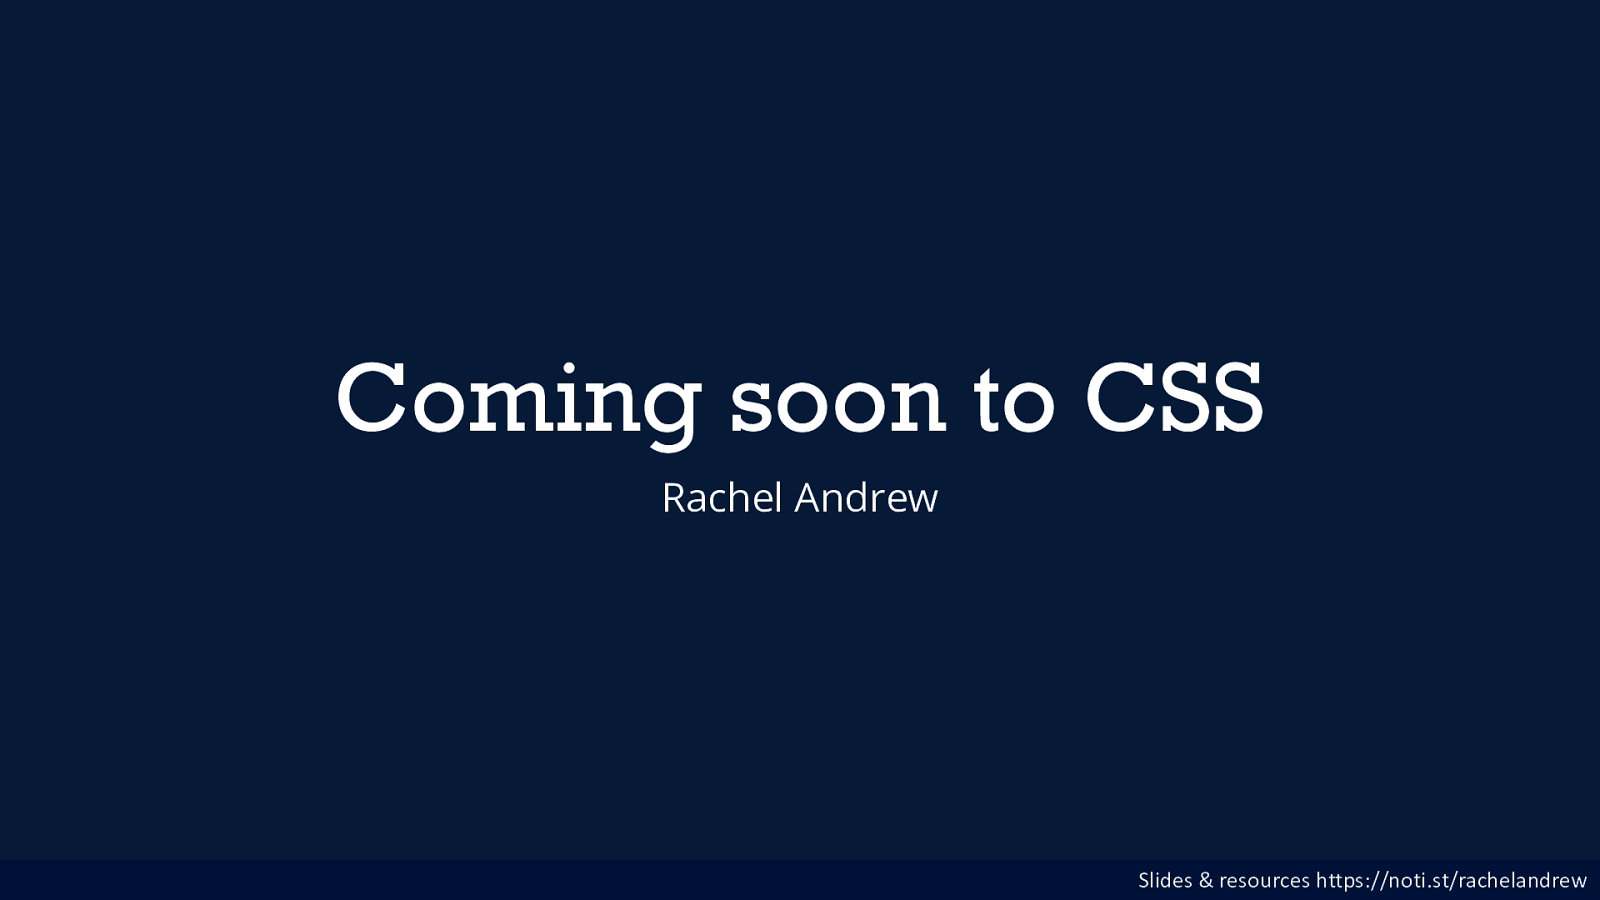 Coming soon to CSS